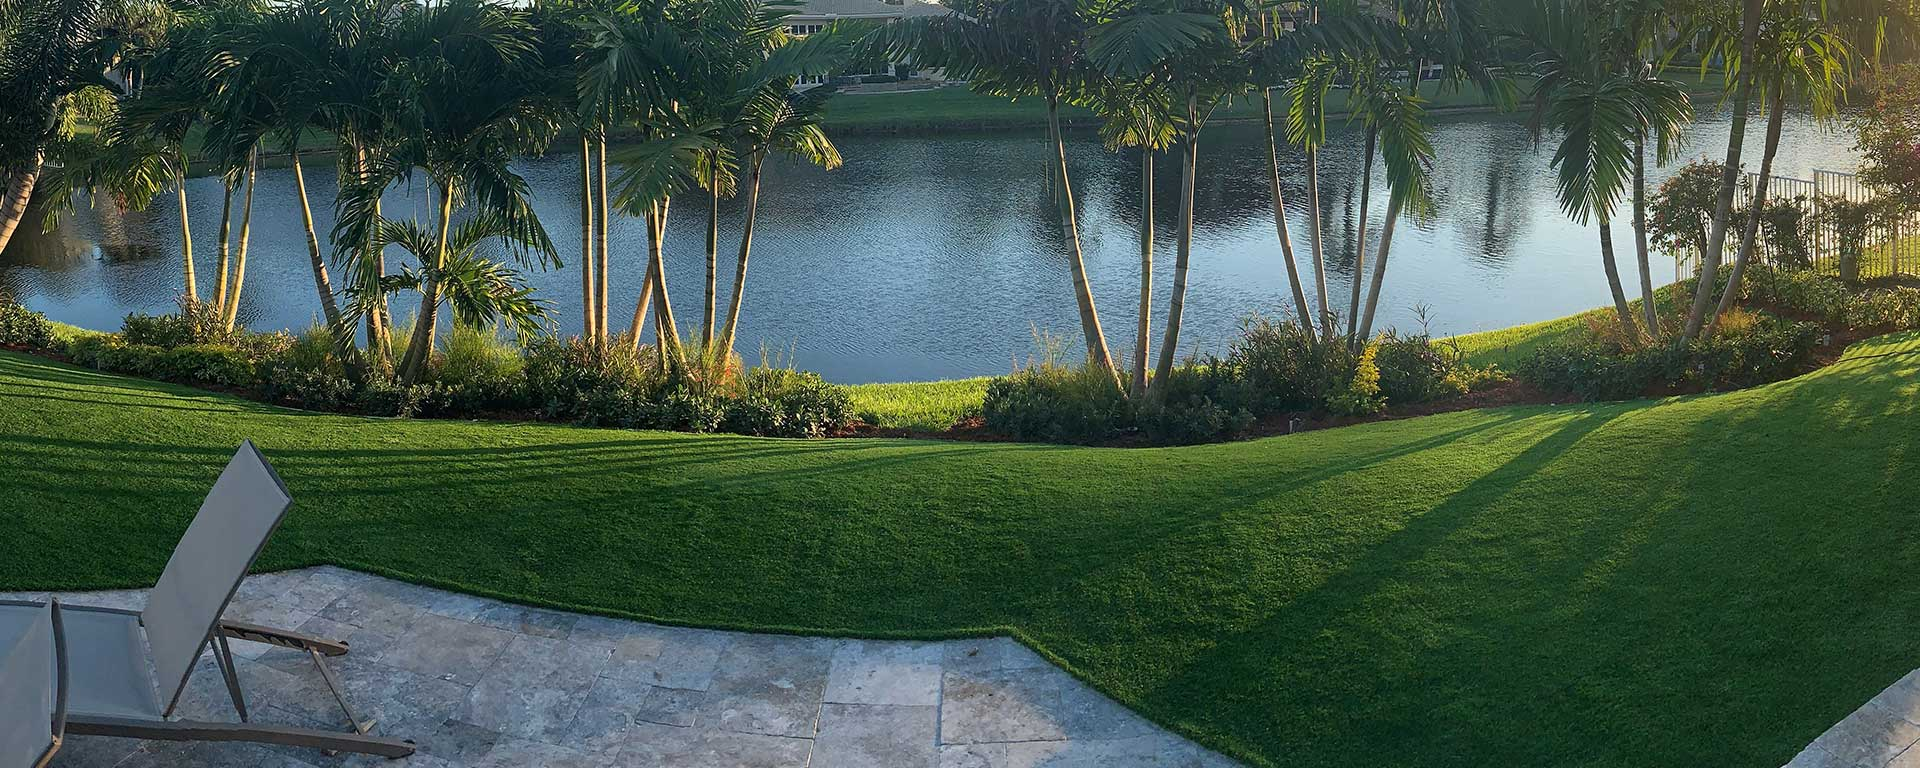 Fort Lauderdale Artificial Grass Installation, Putting Greens and Synthetic Turf